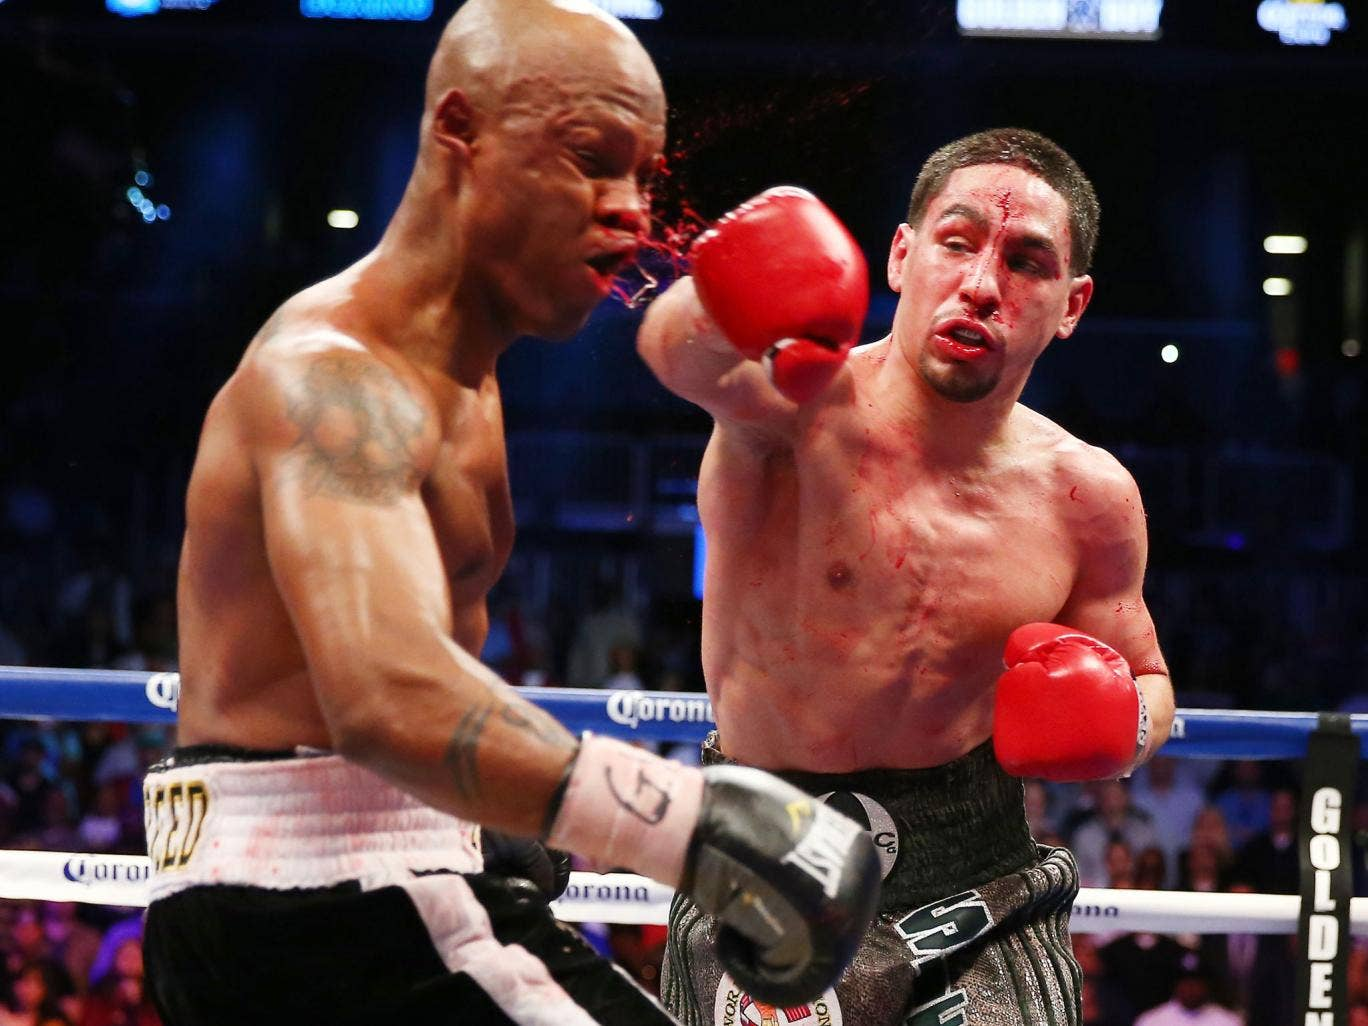 Danny Garcia, right, who could face Amir Khan in the future, lands a heavy blow on Zab Judah in their bloody light welterweight title clash